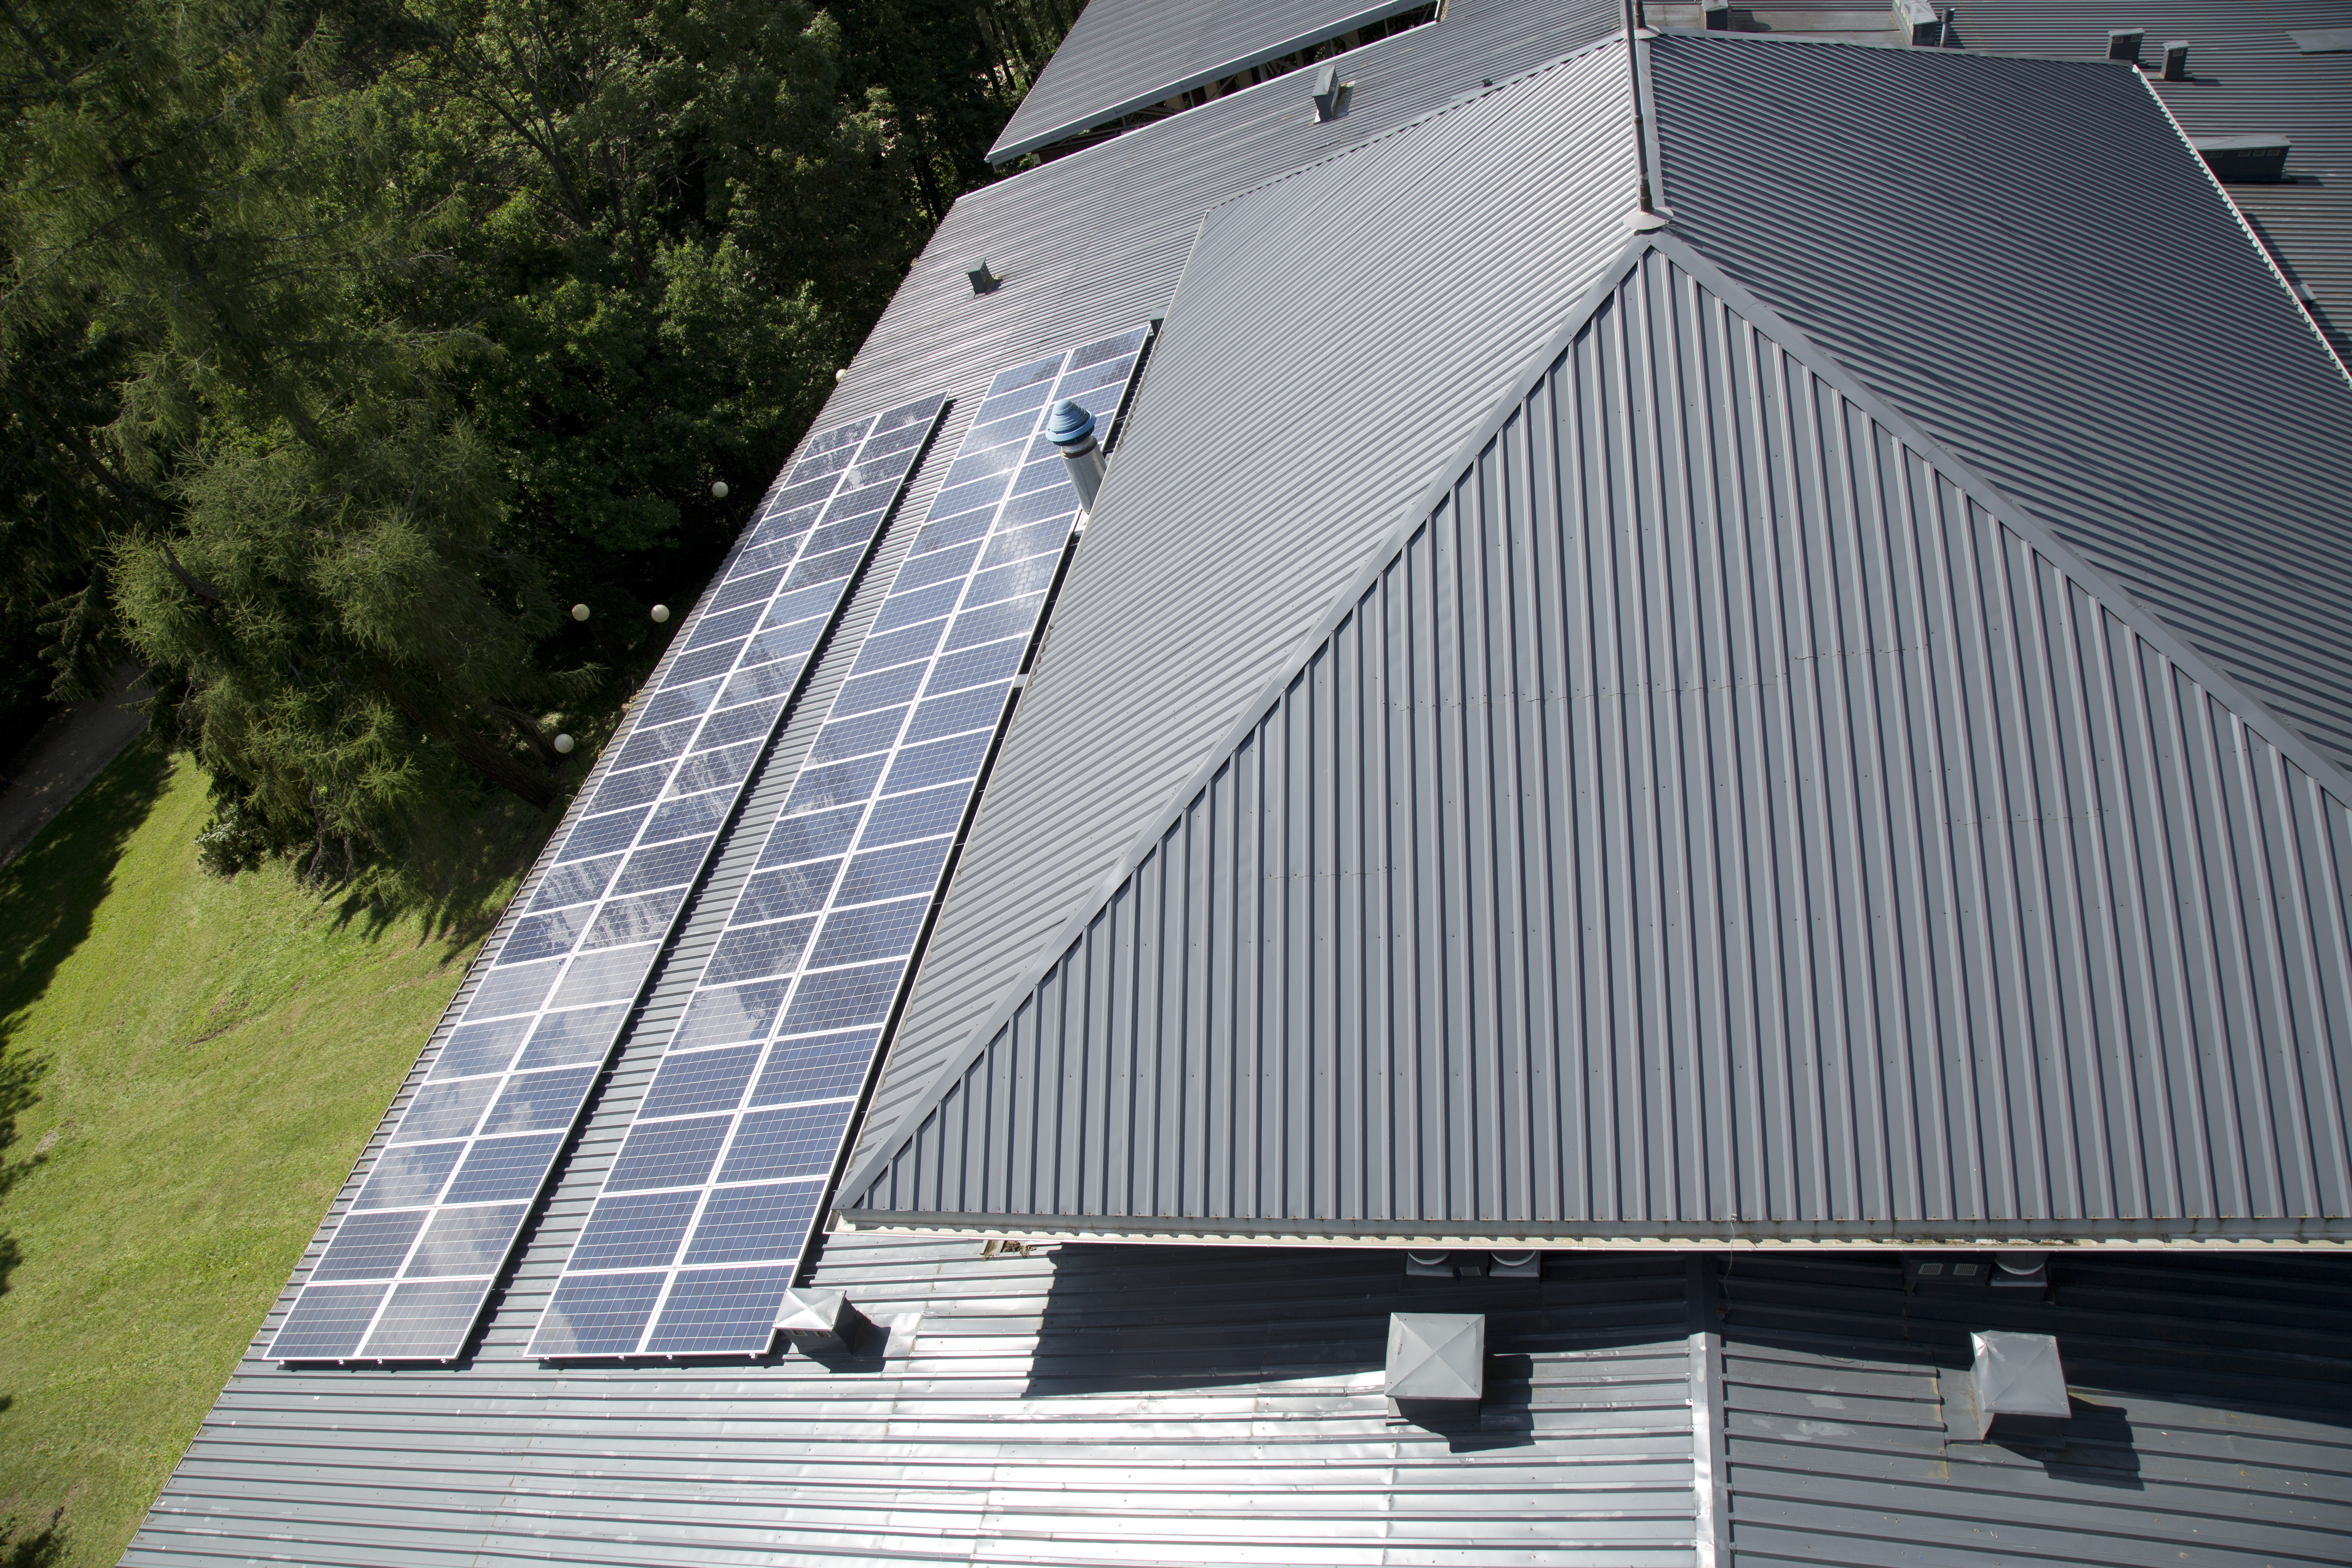 metal roofing with energy solar panels